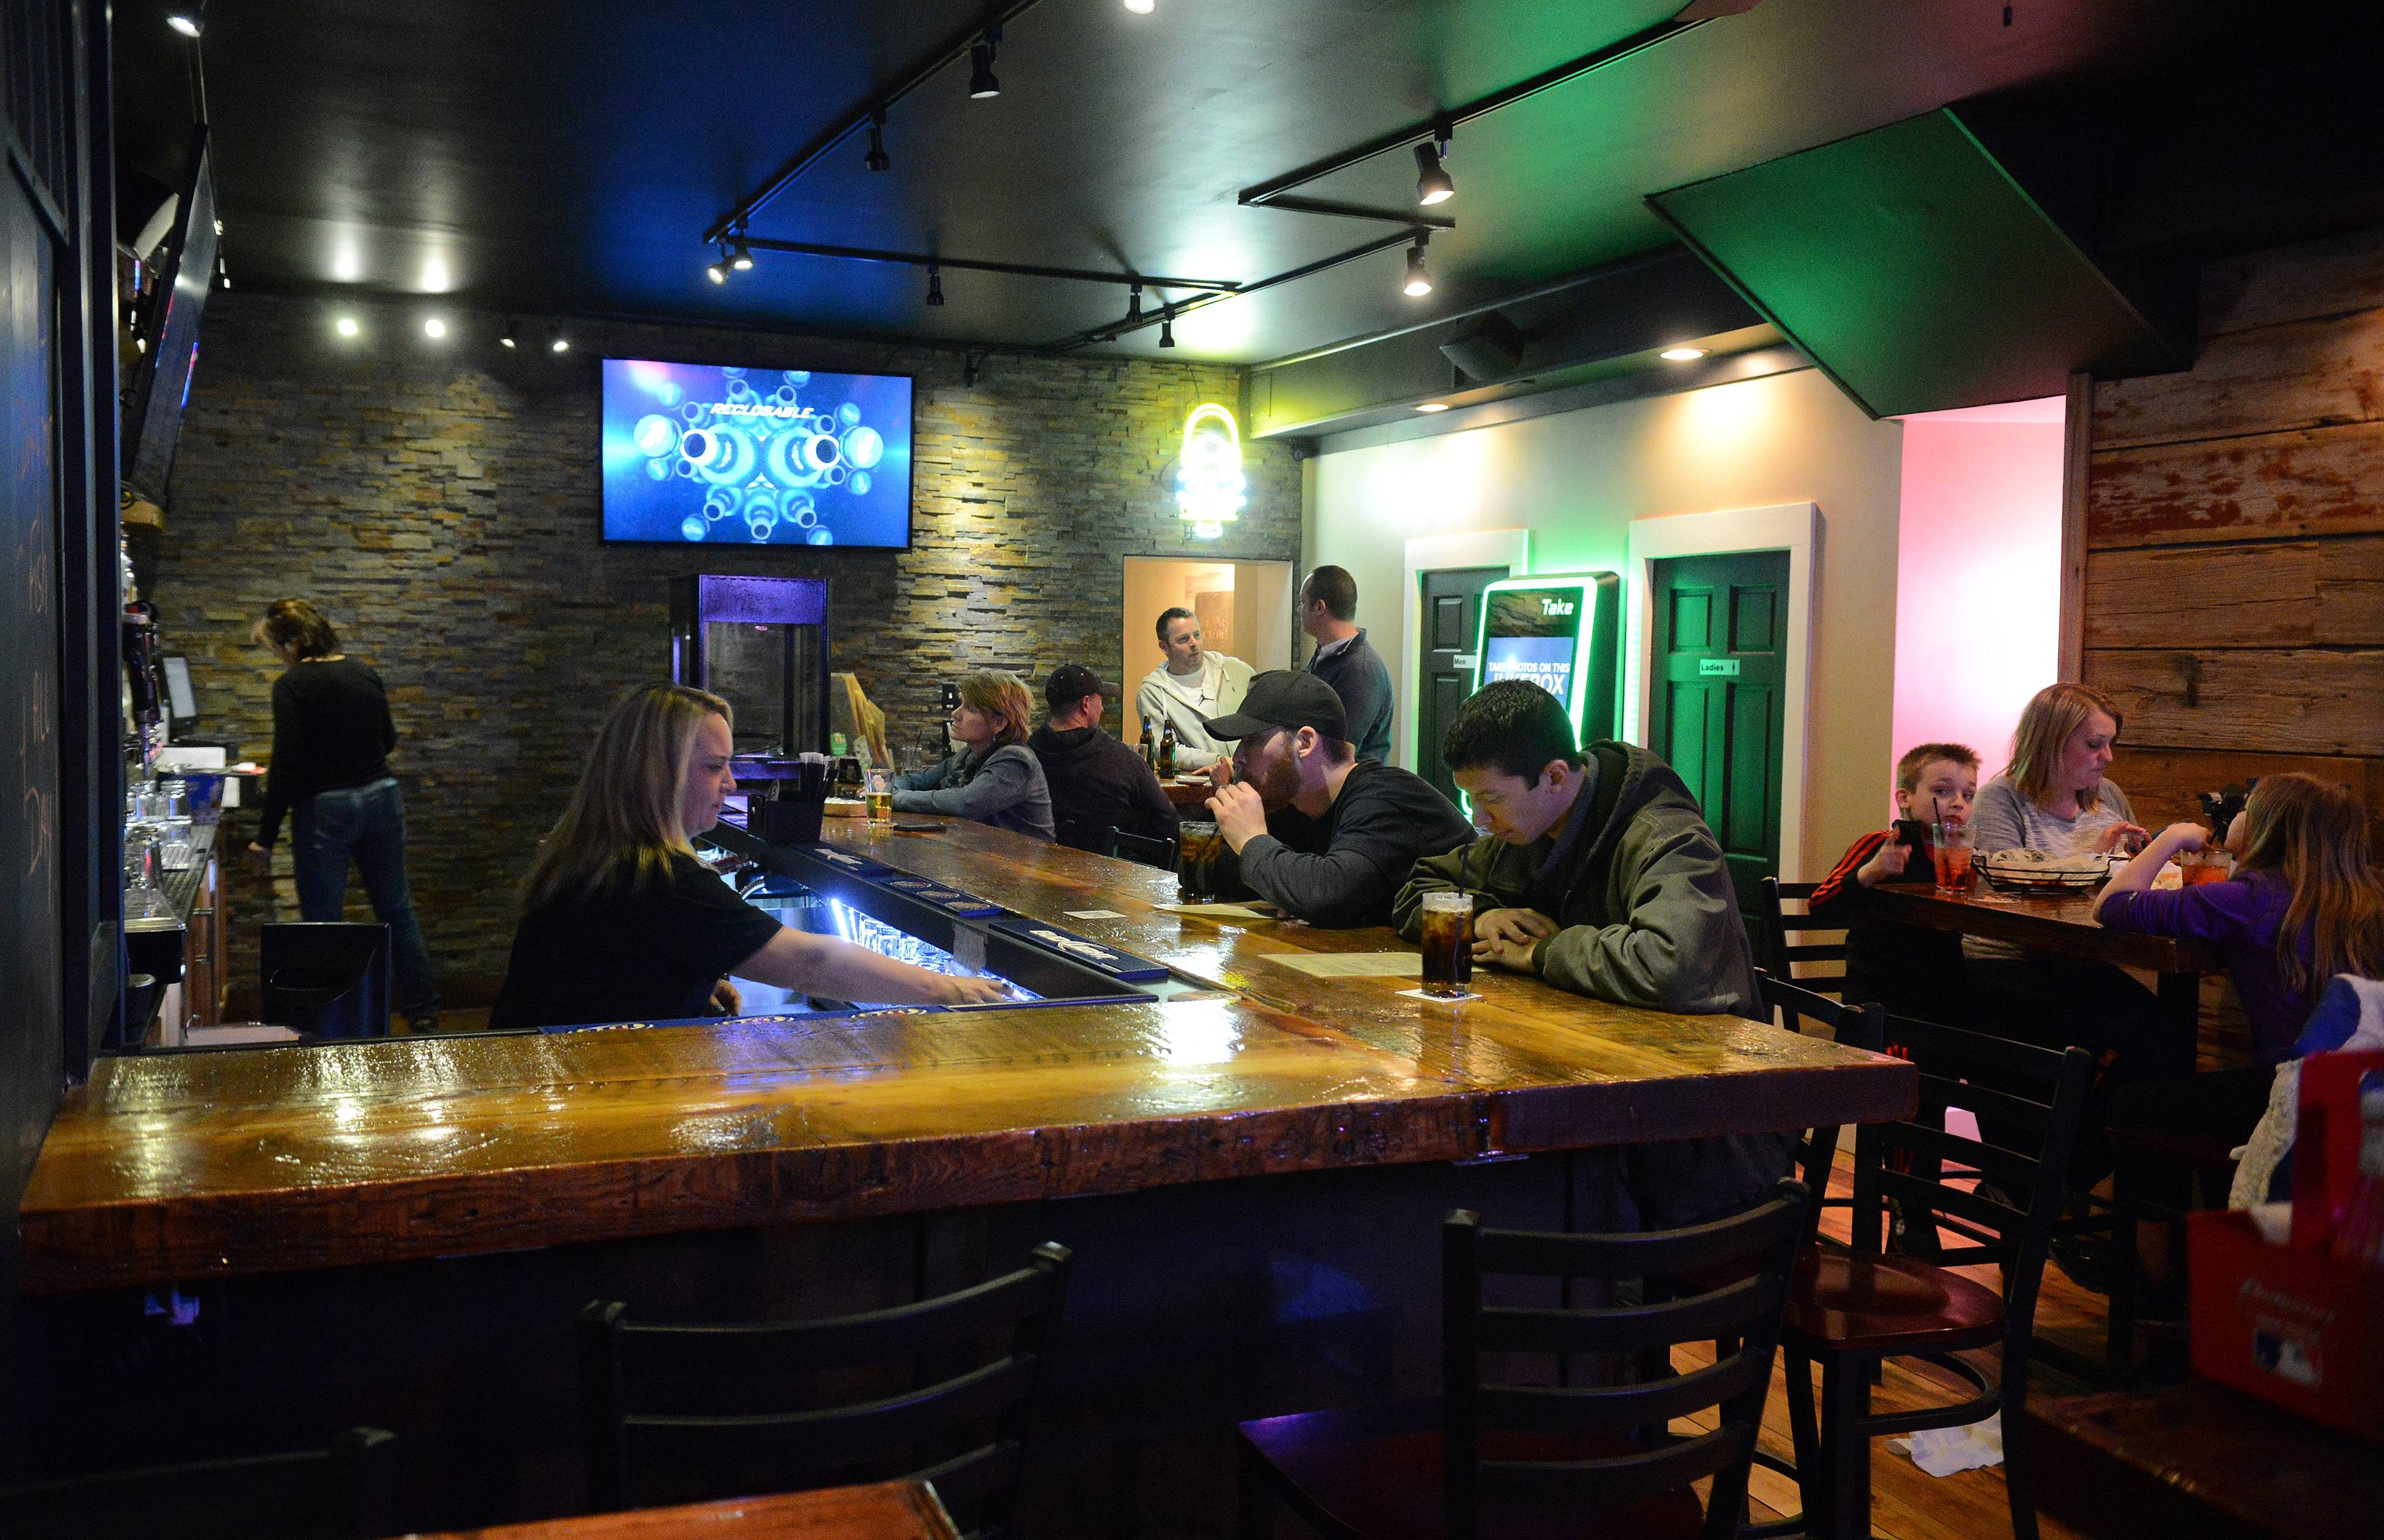 Eddie Gaedel Pub and Grill in Elburn offers burgers as well as other sandwiches, salads and starters.